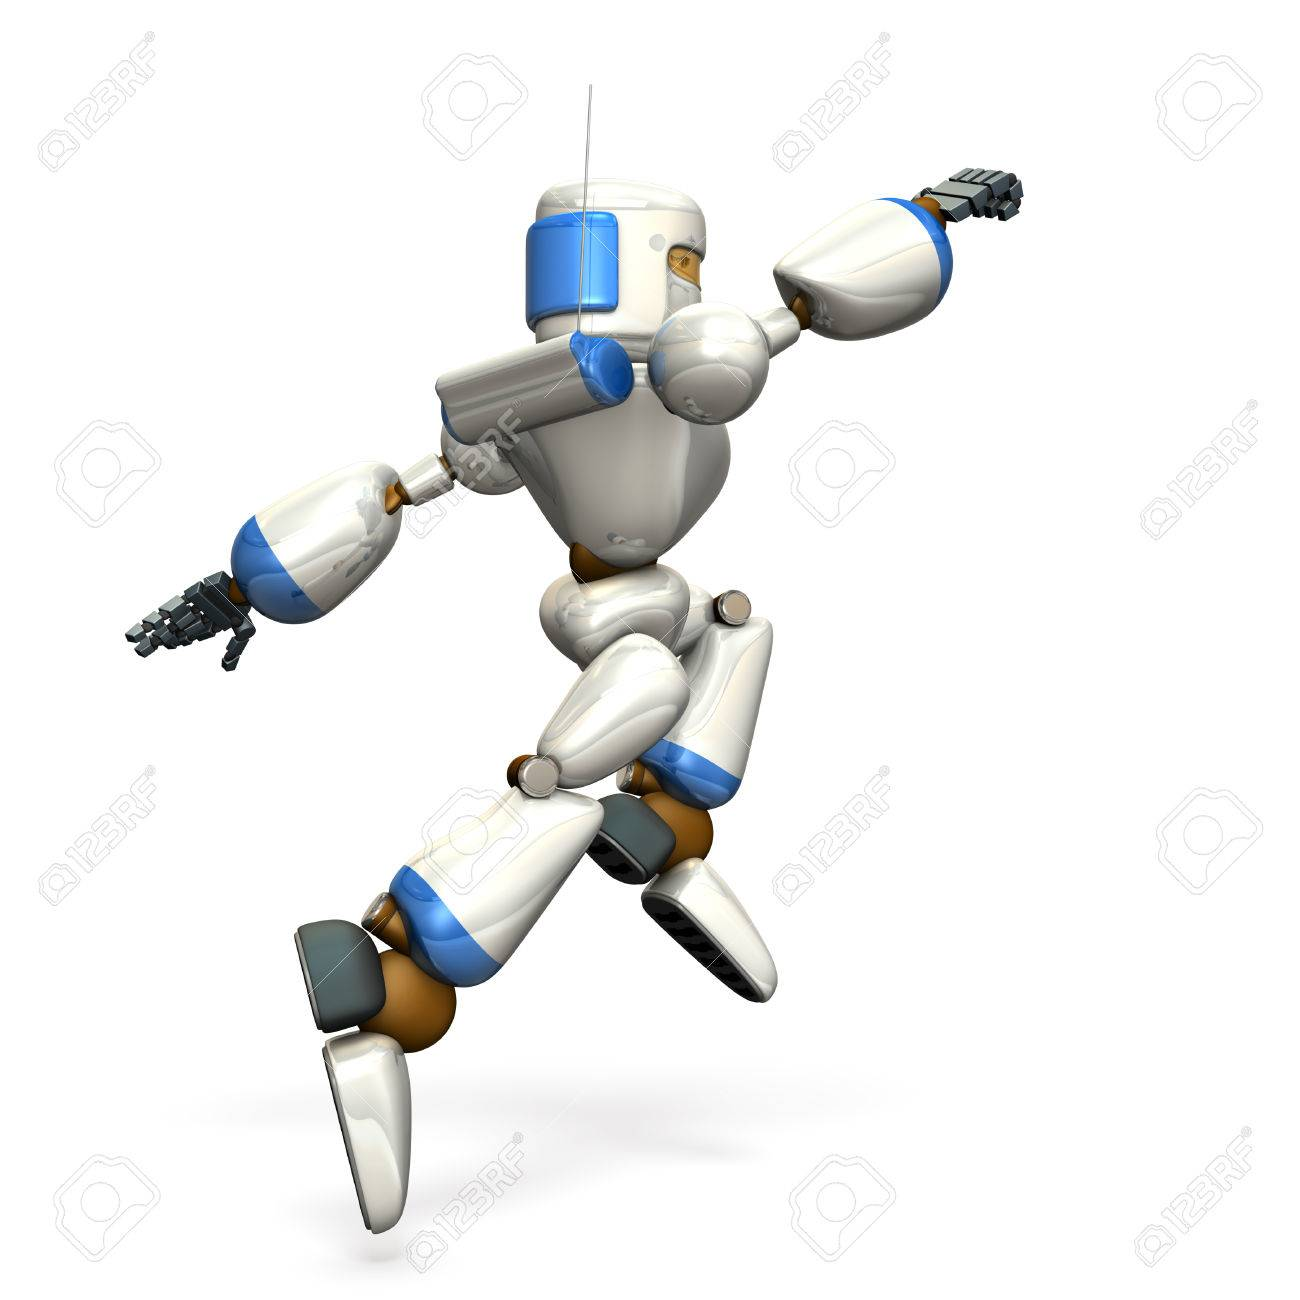 Robot is jumping toward the target  isolated, computer generated